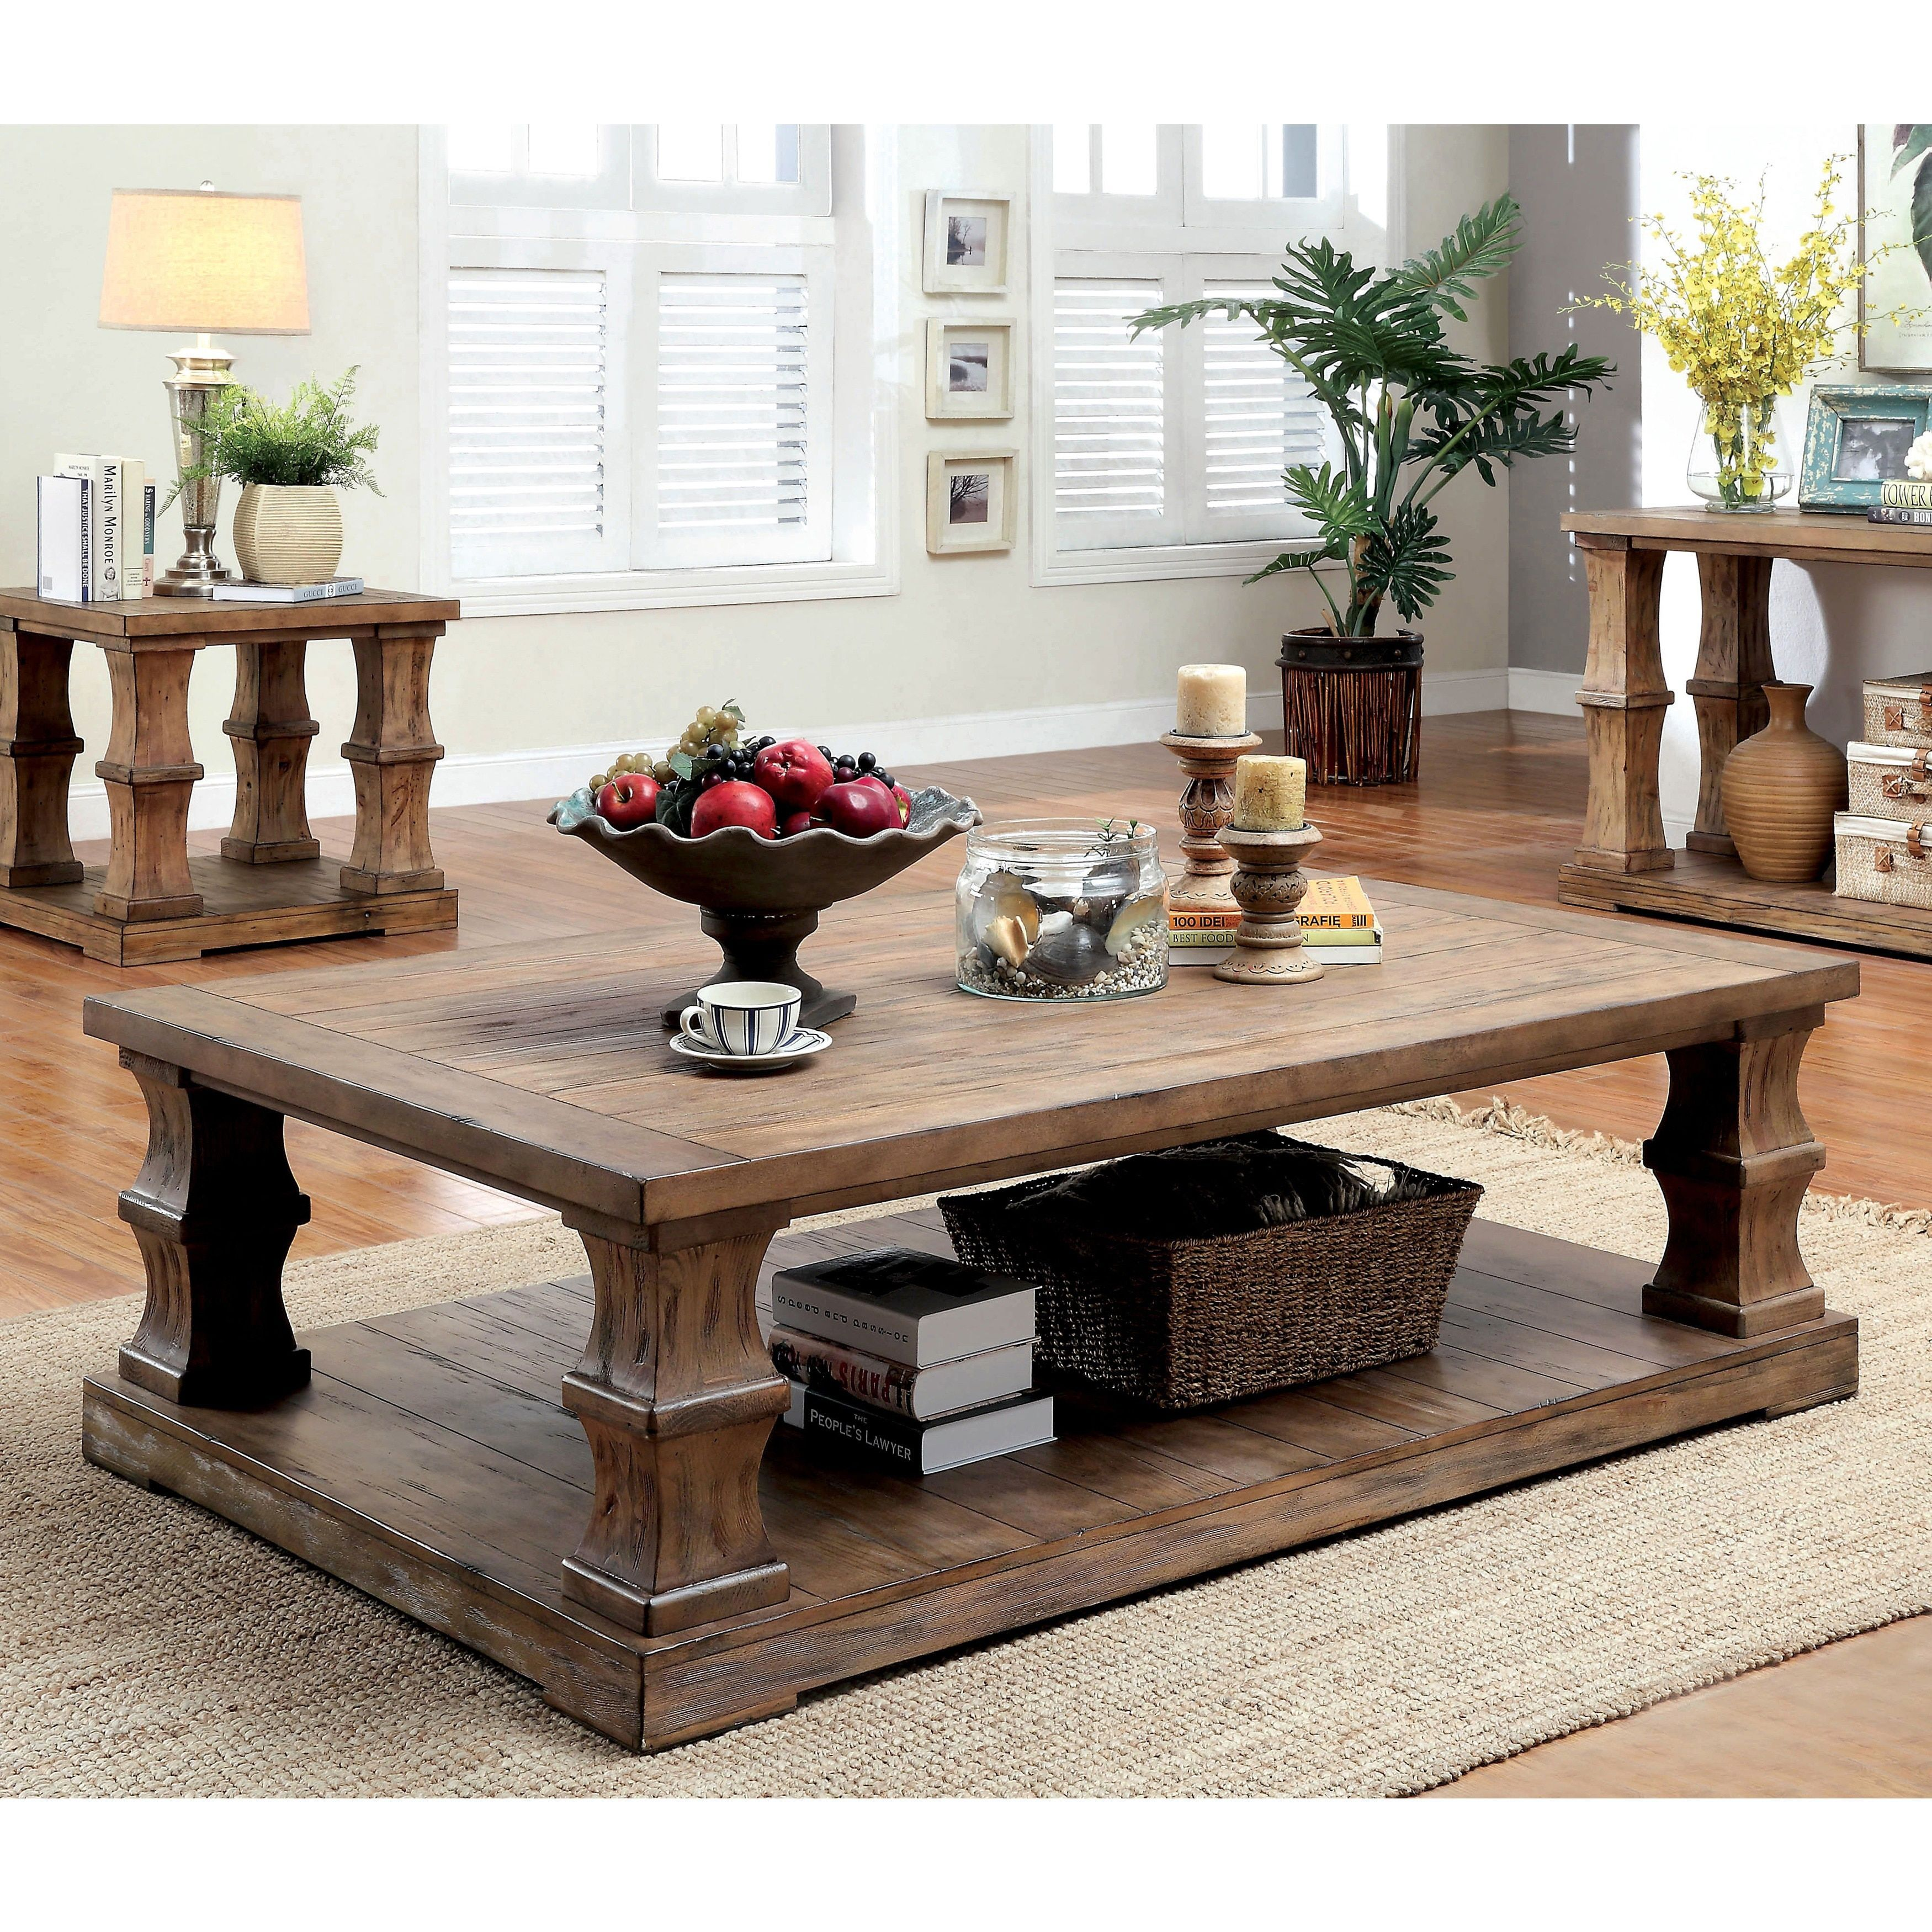 Furniture Of America Lass Transitional Brown Solid Wood Coffee